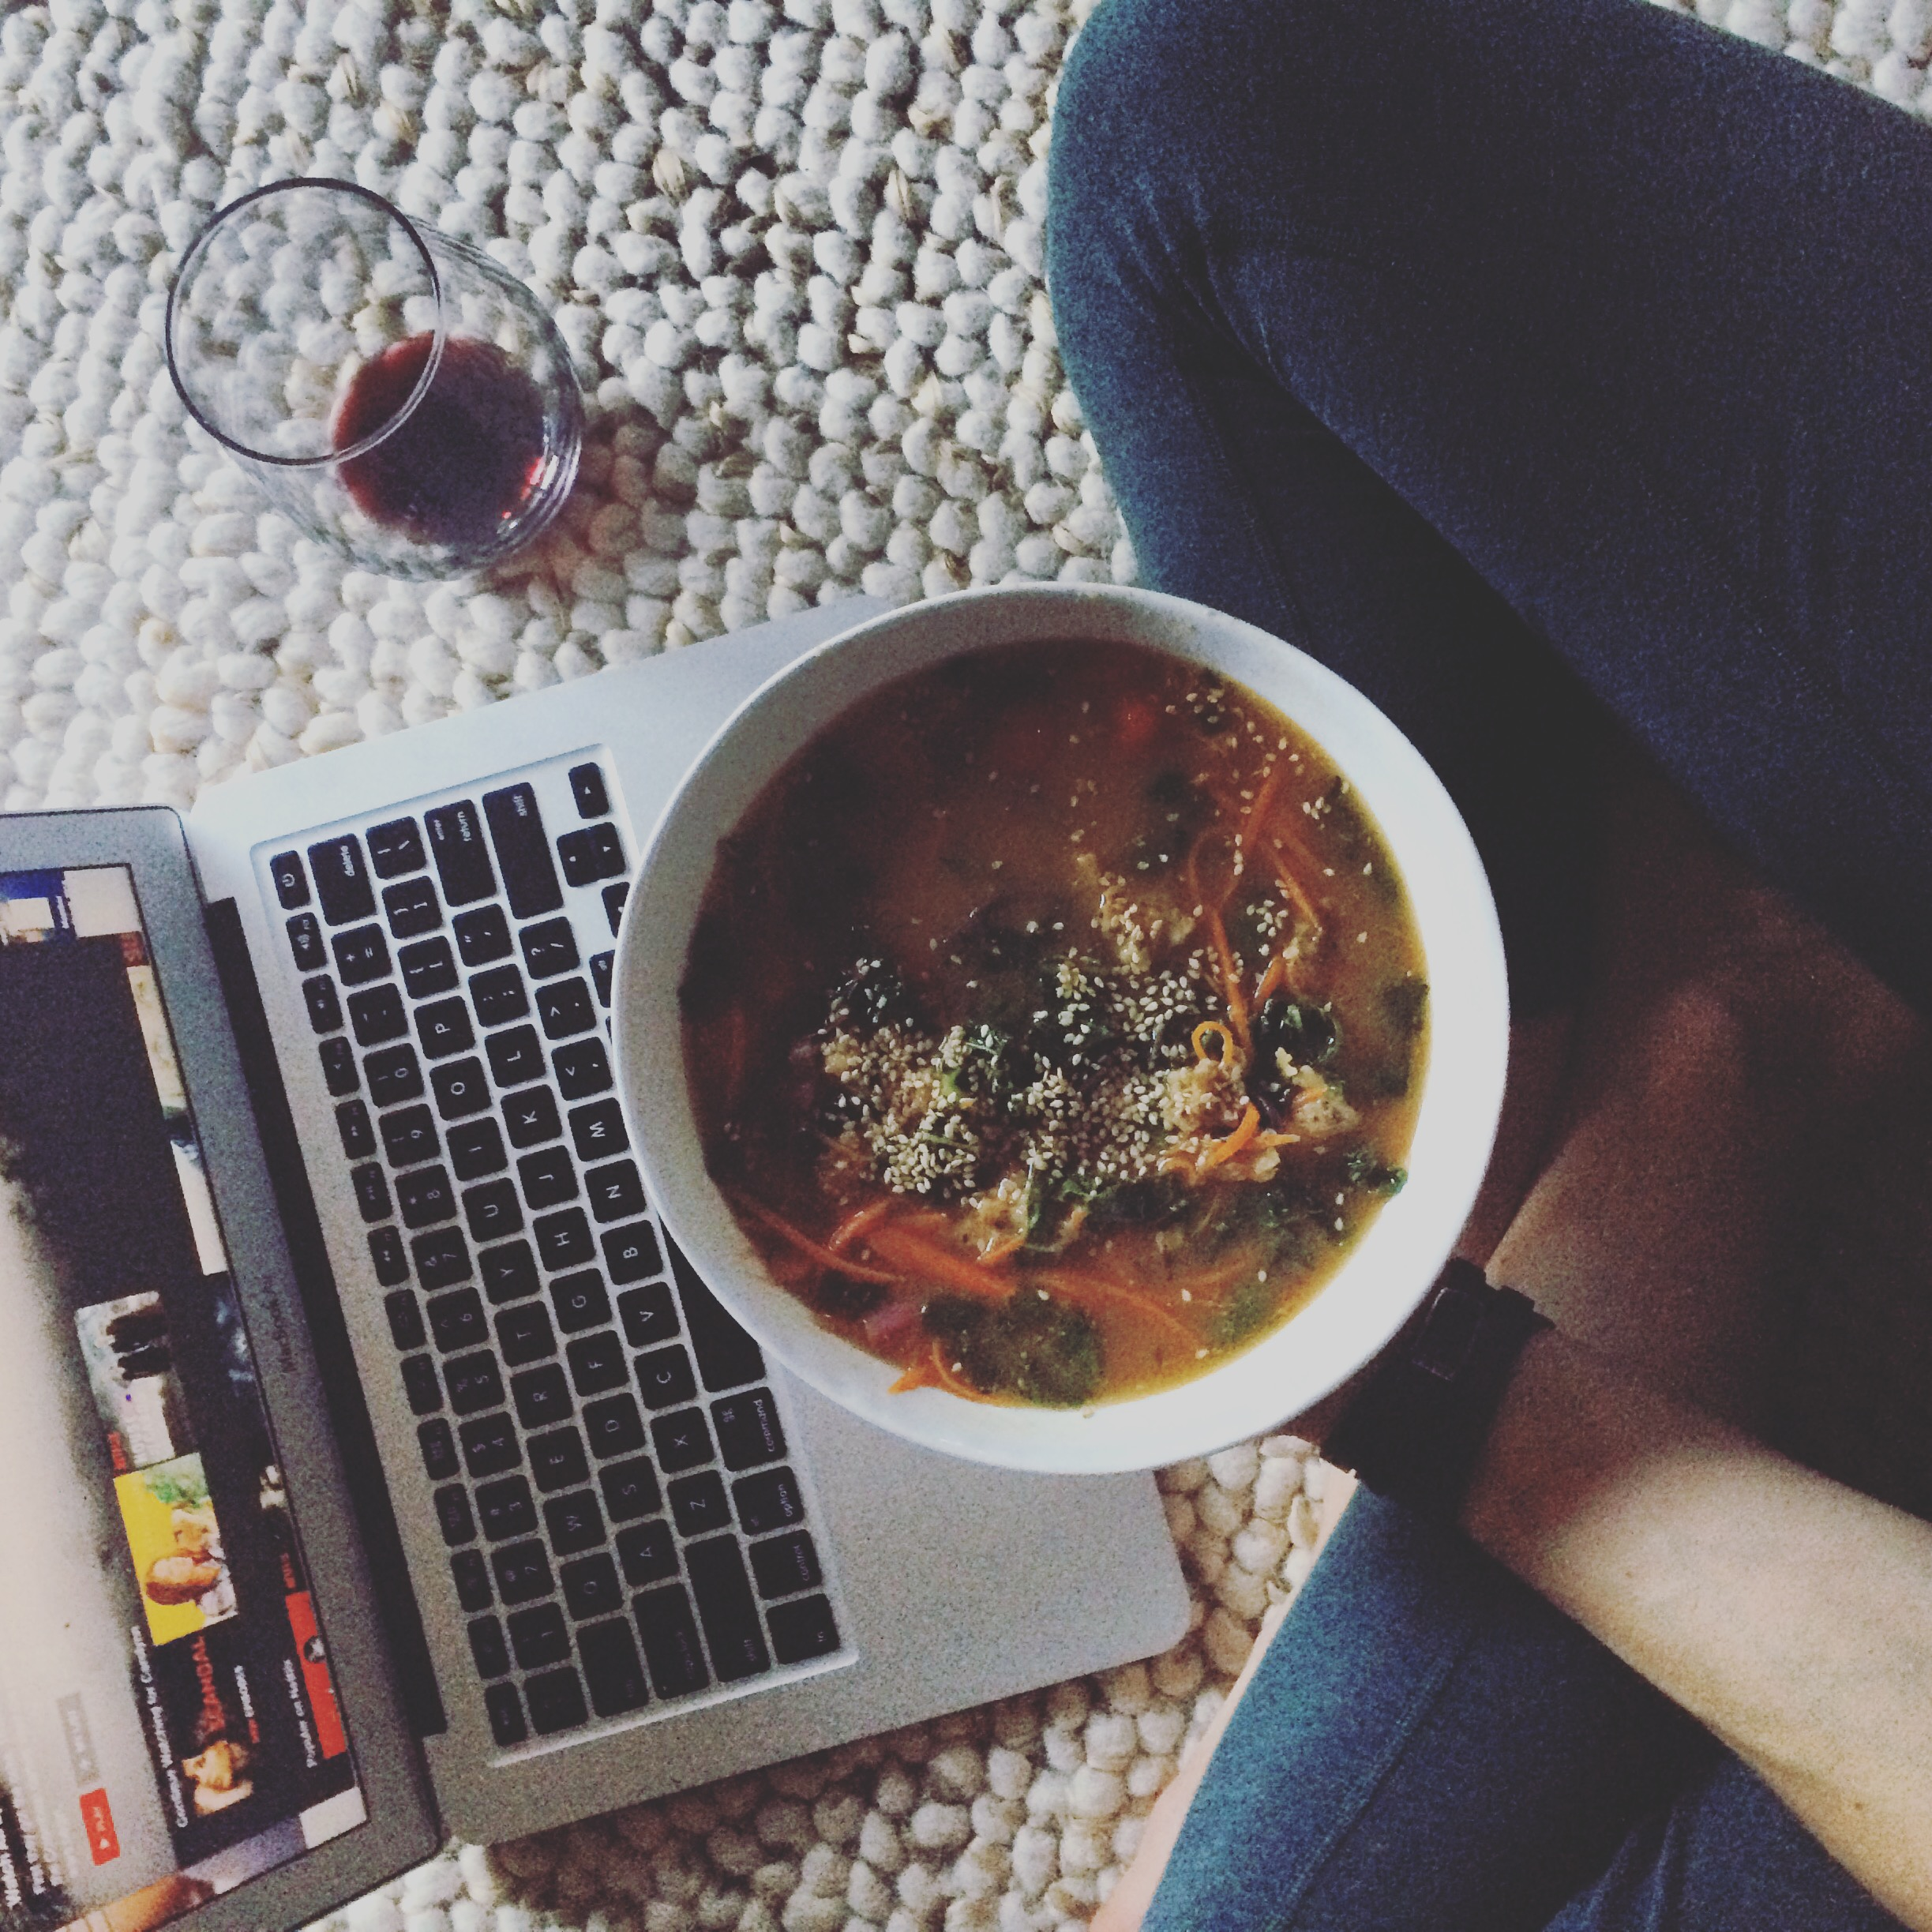 netflix + miso soup - was a regular friday night activity in October.